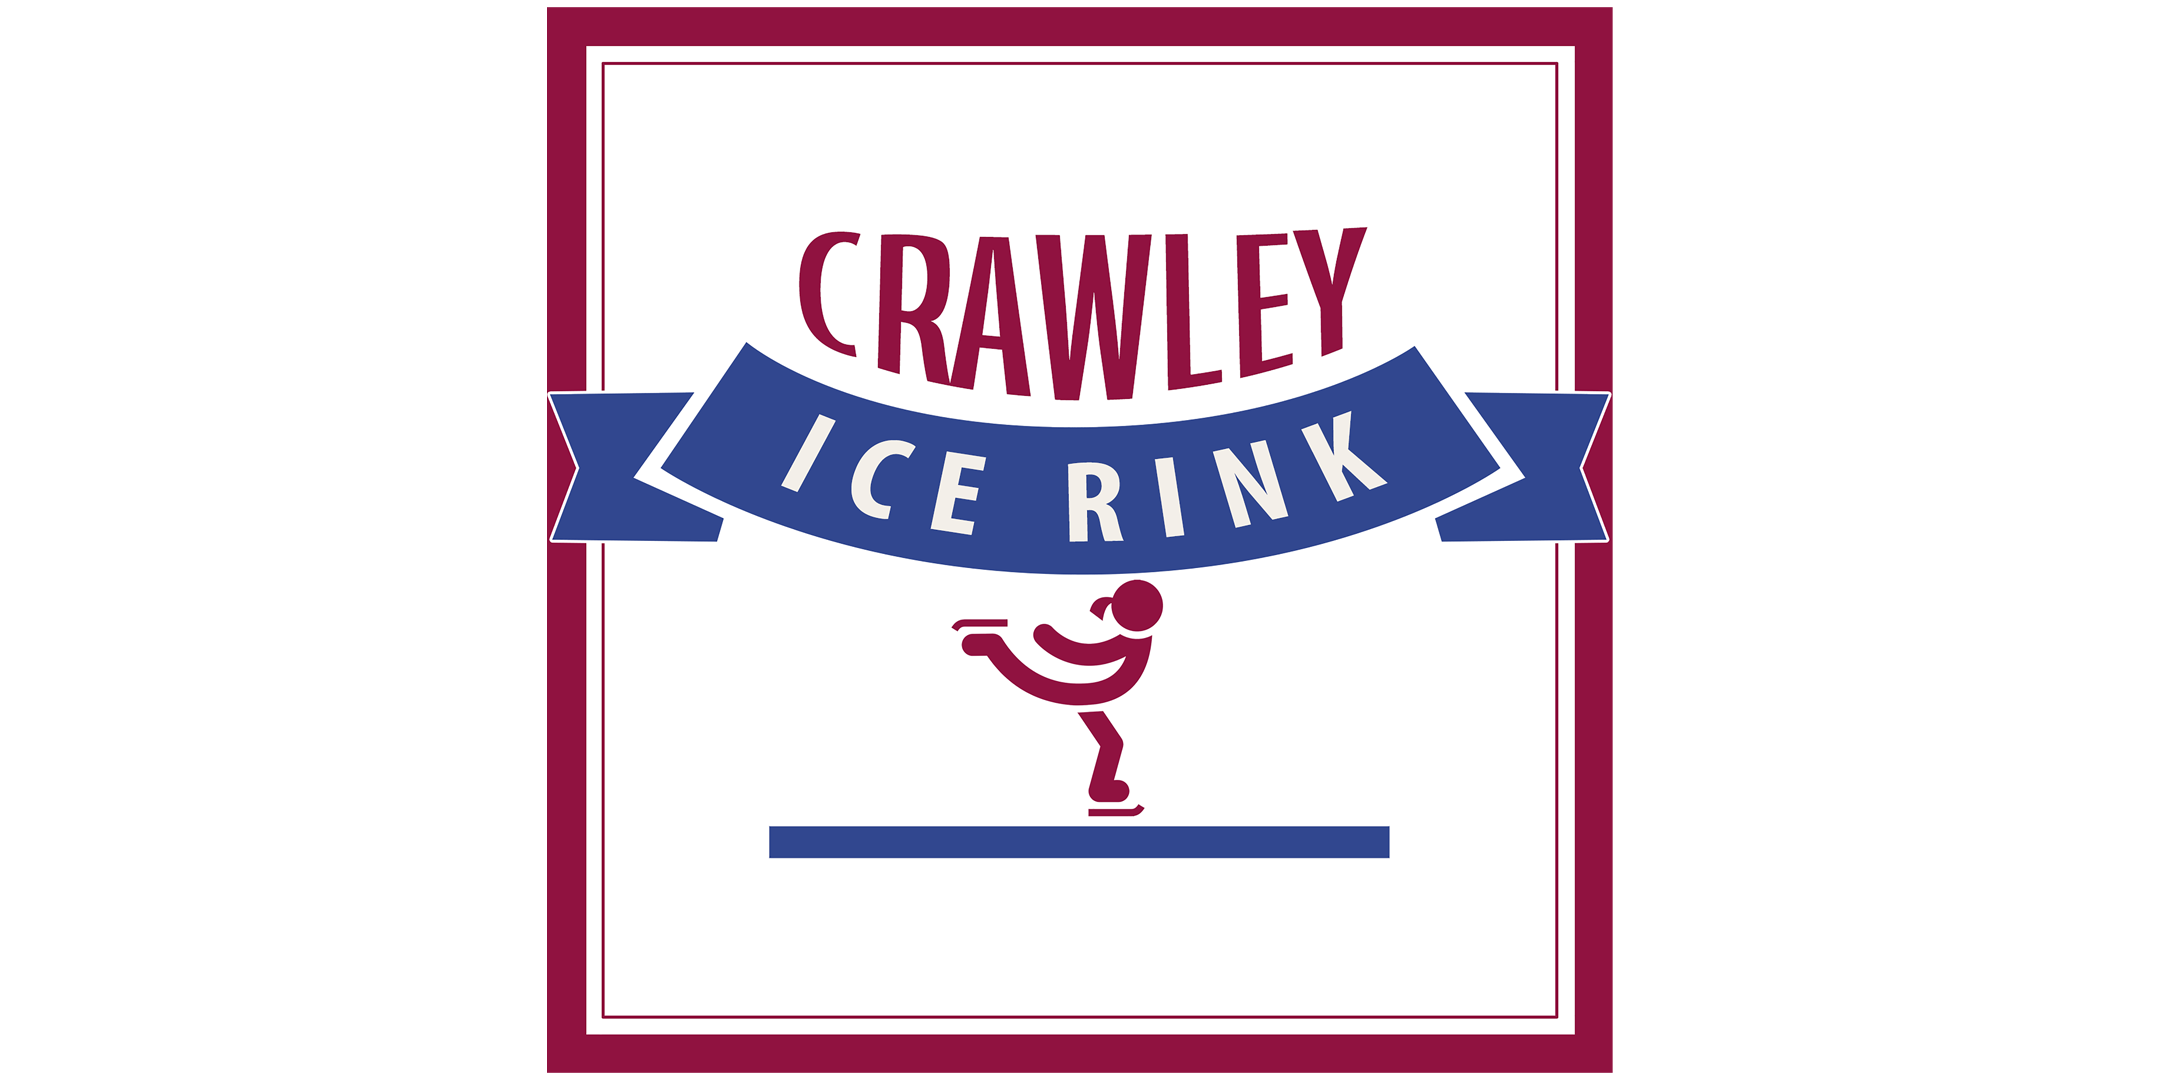 Crawley Ice Rink - 24th November (Off Peak)